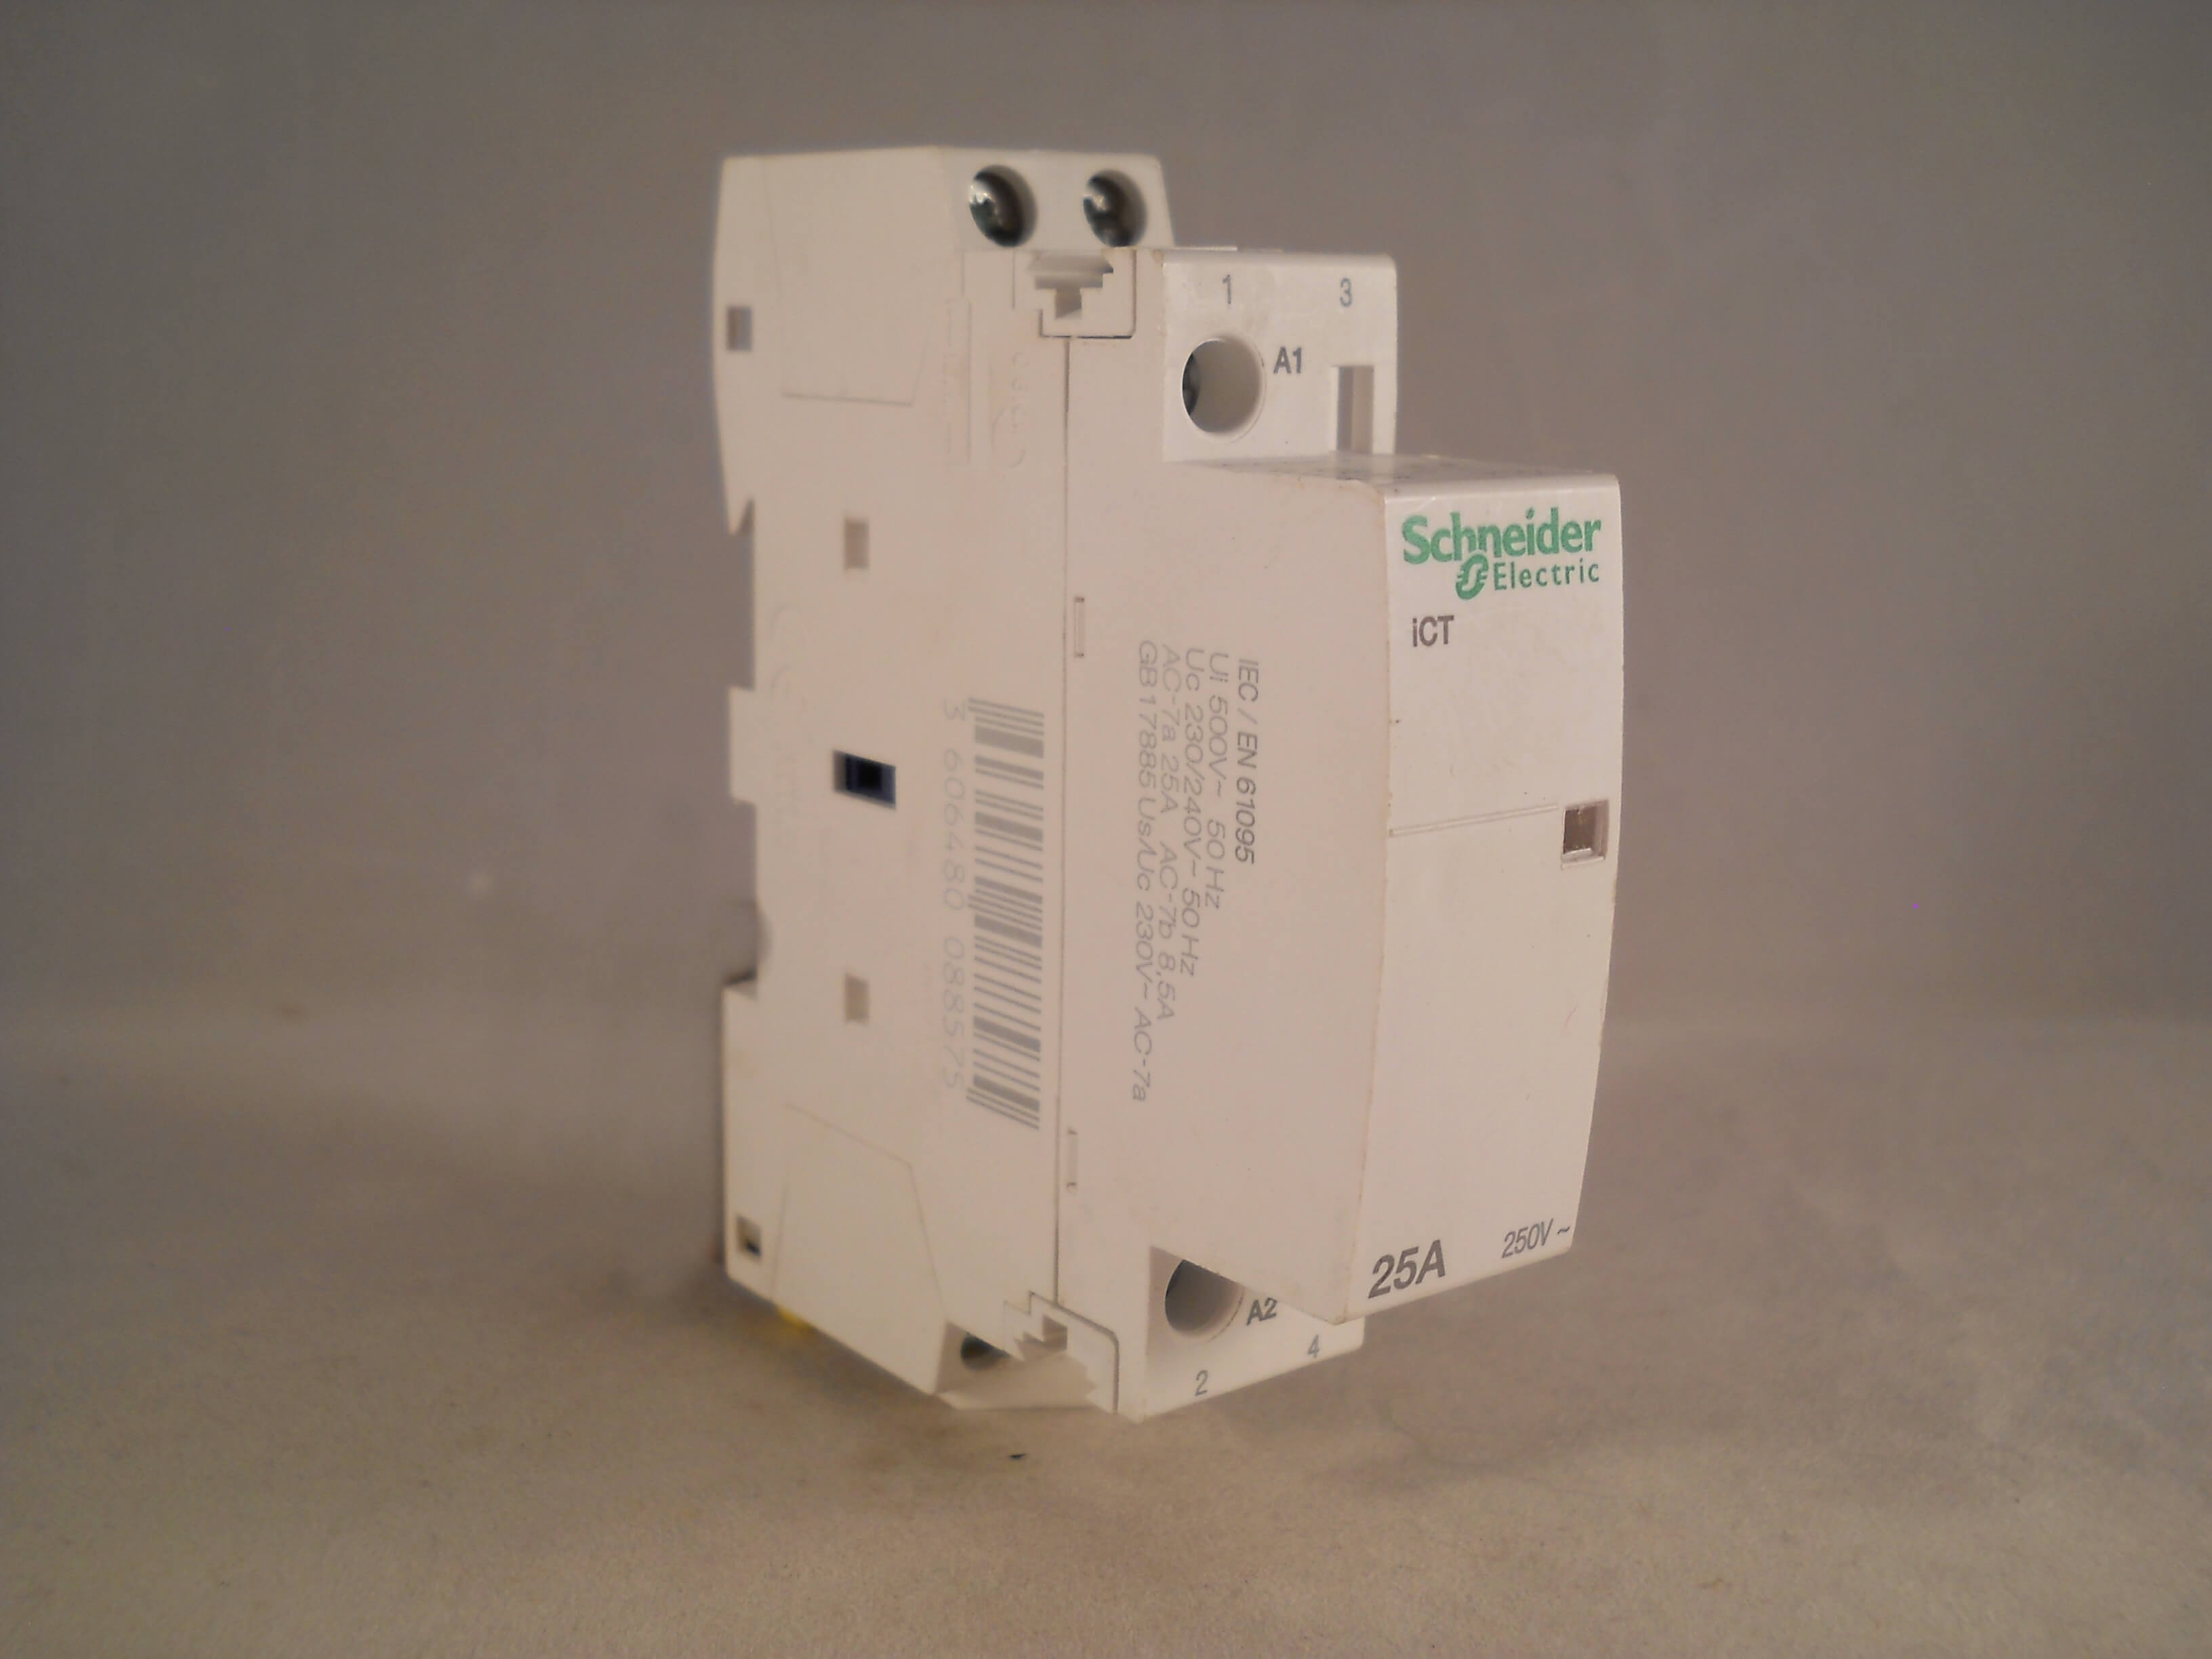 Schneider Contactor 25 Amp 2 Pole 240vac Coil N O Acti 9 25a Ict 240 3 Phase Wiring